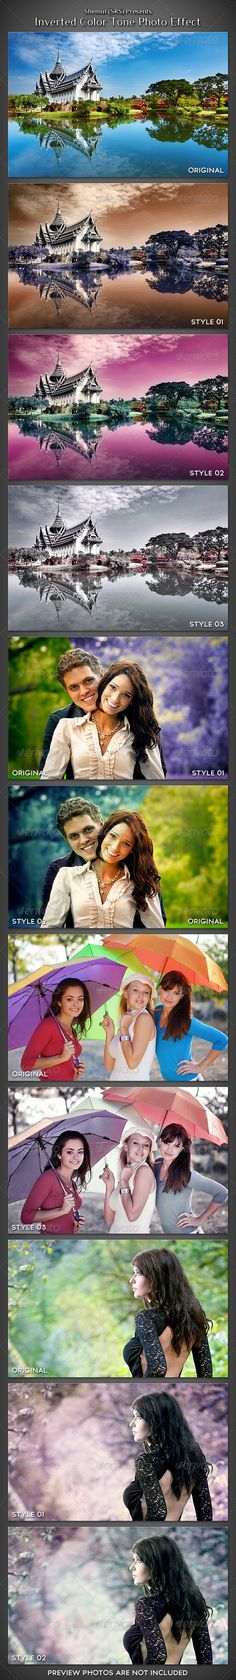 Inverted Romantic Tone Photo Effect Action